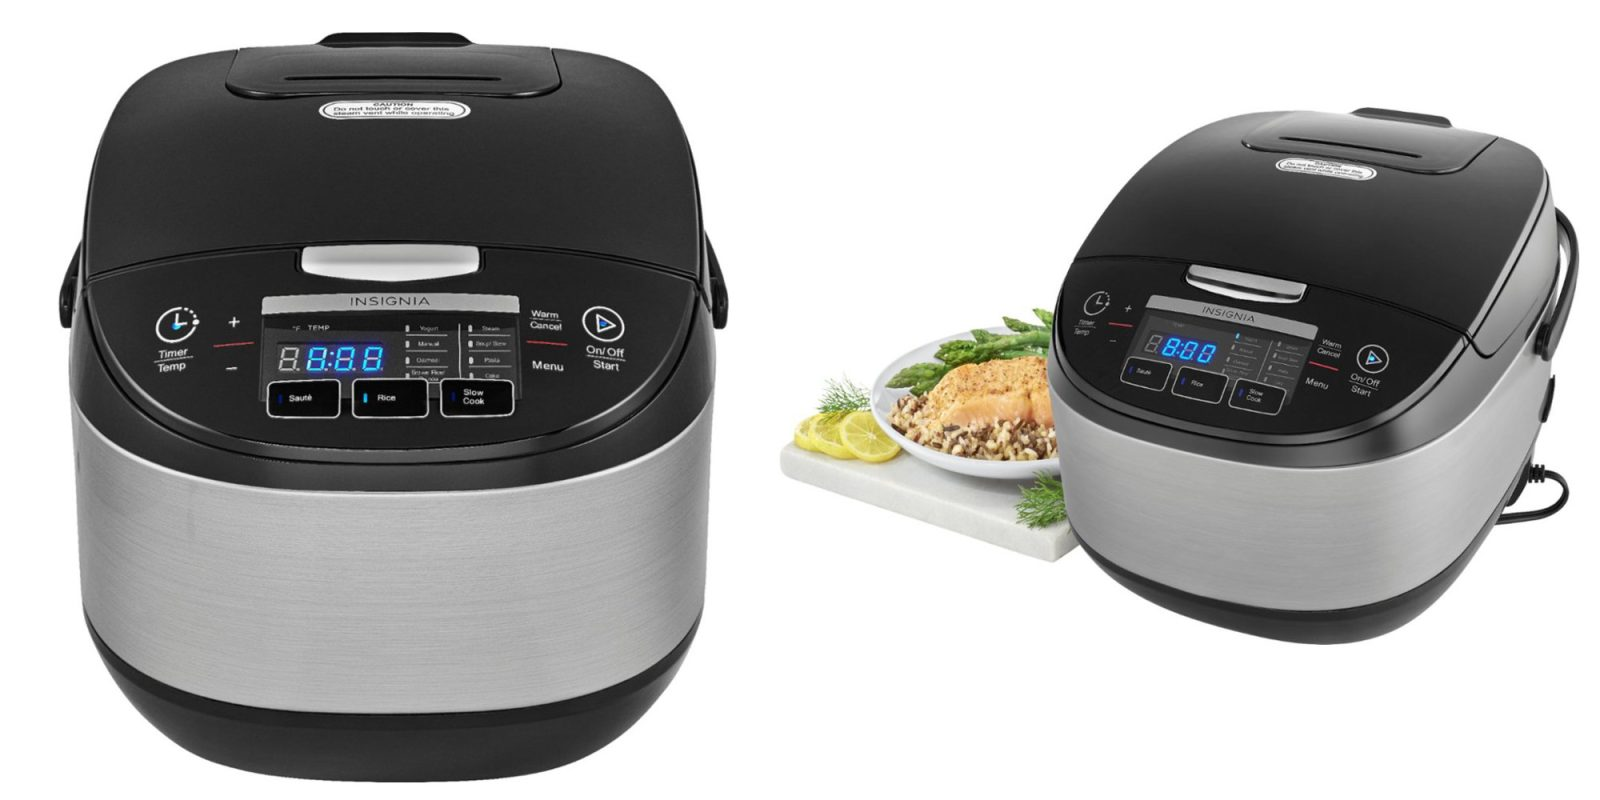 This stainless steel 20-cup rice cooker is just $30 shipped (Reg. up to $100)